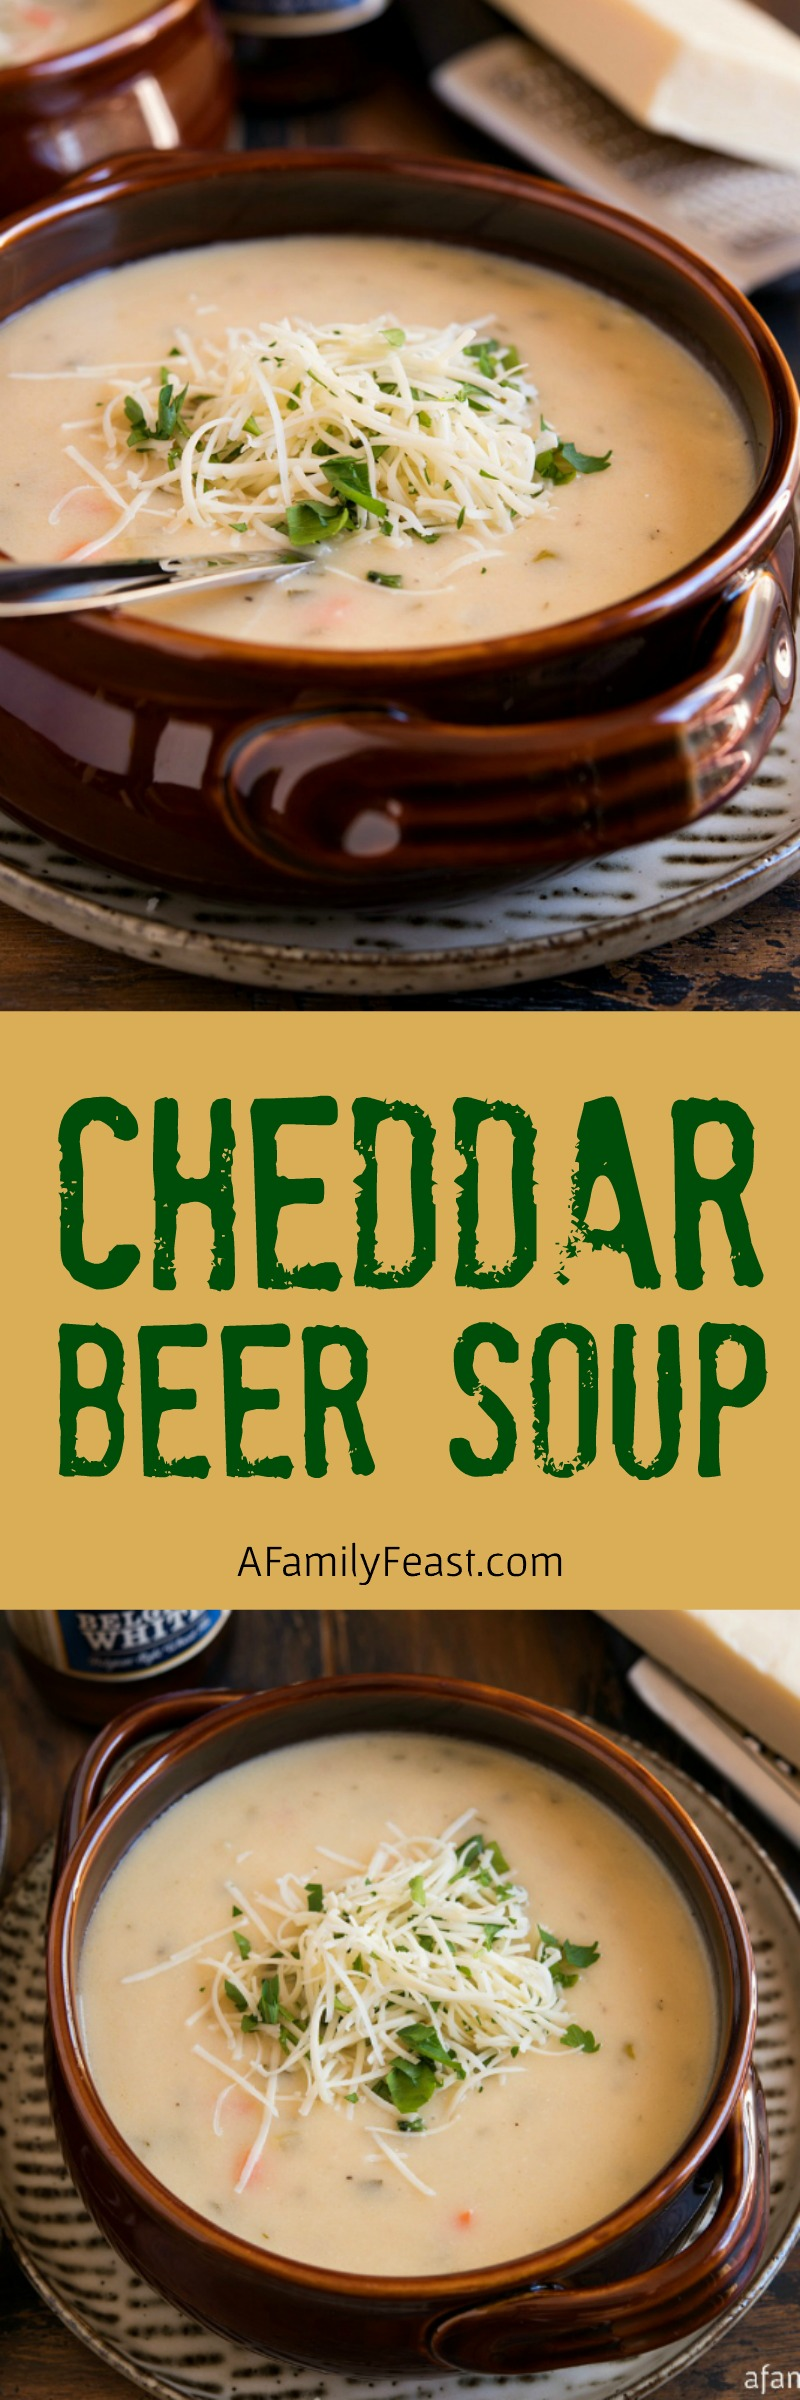 Cheddar Beer Soup - A Family Feast